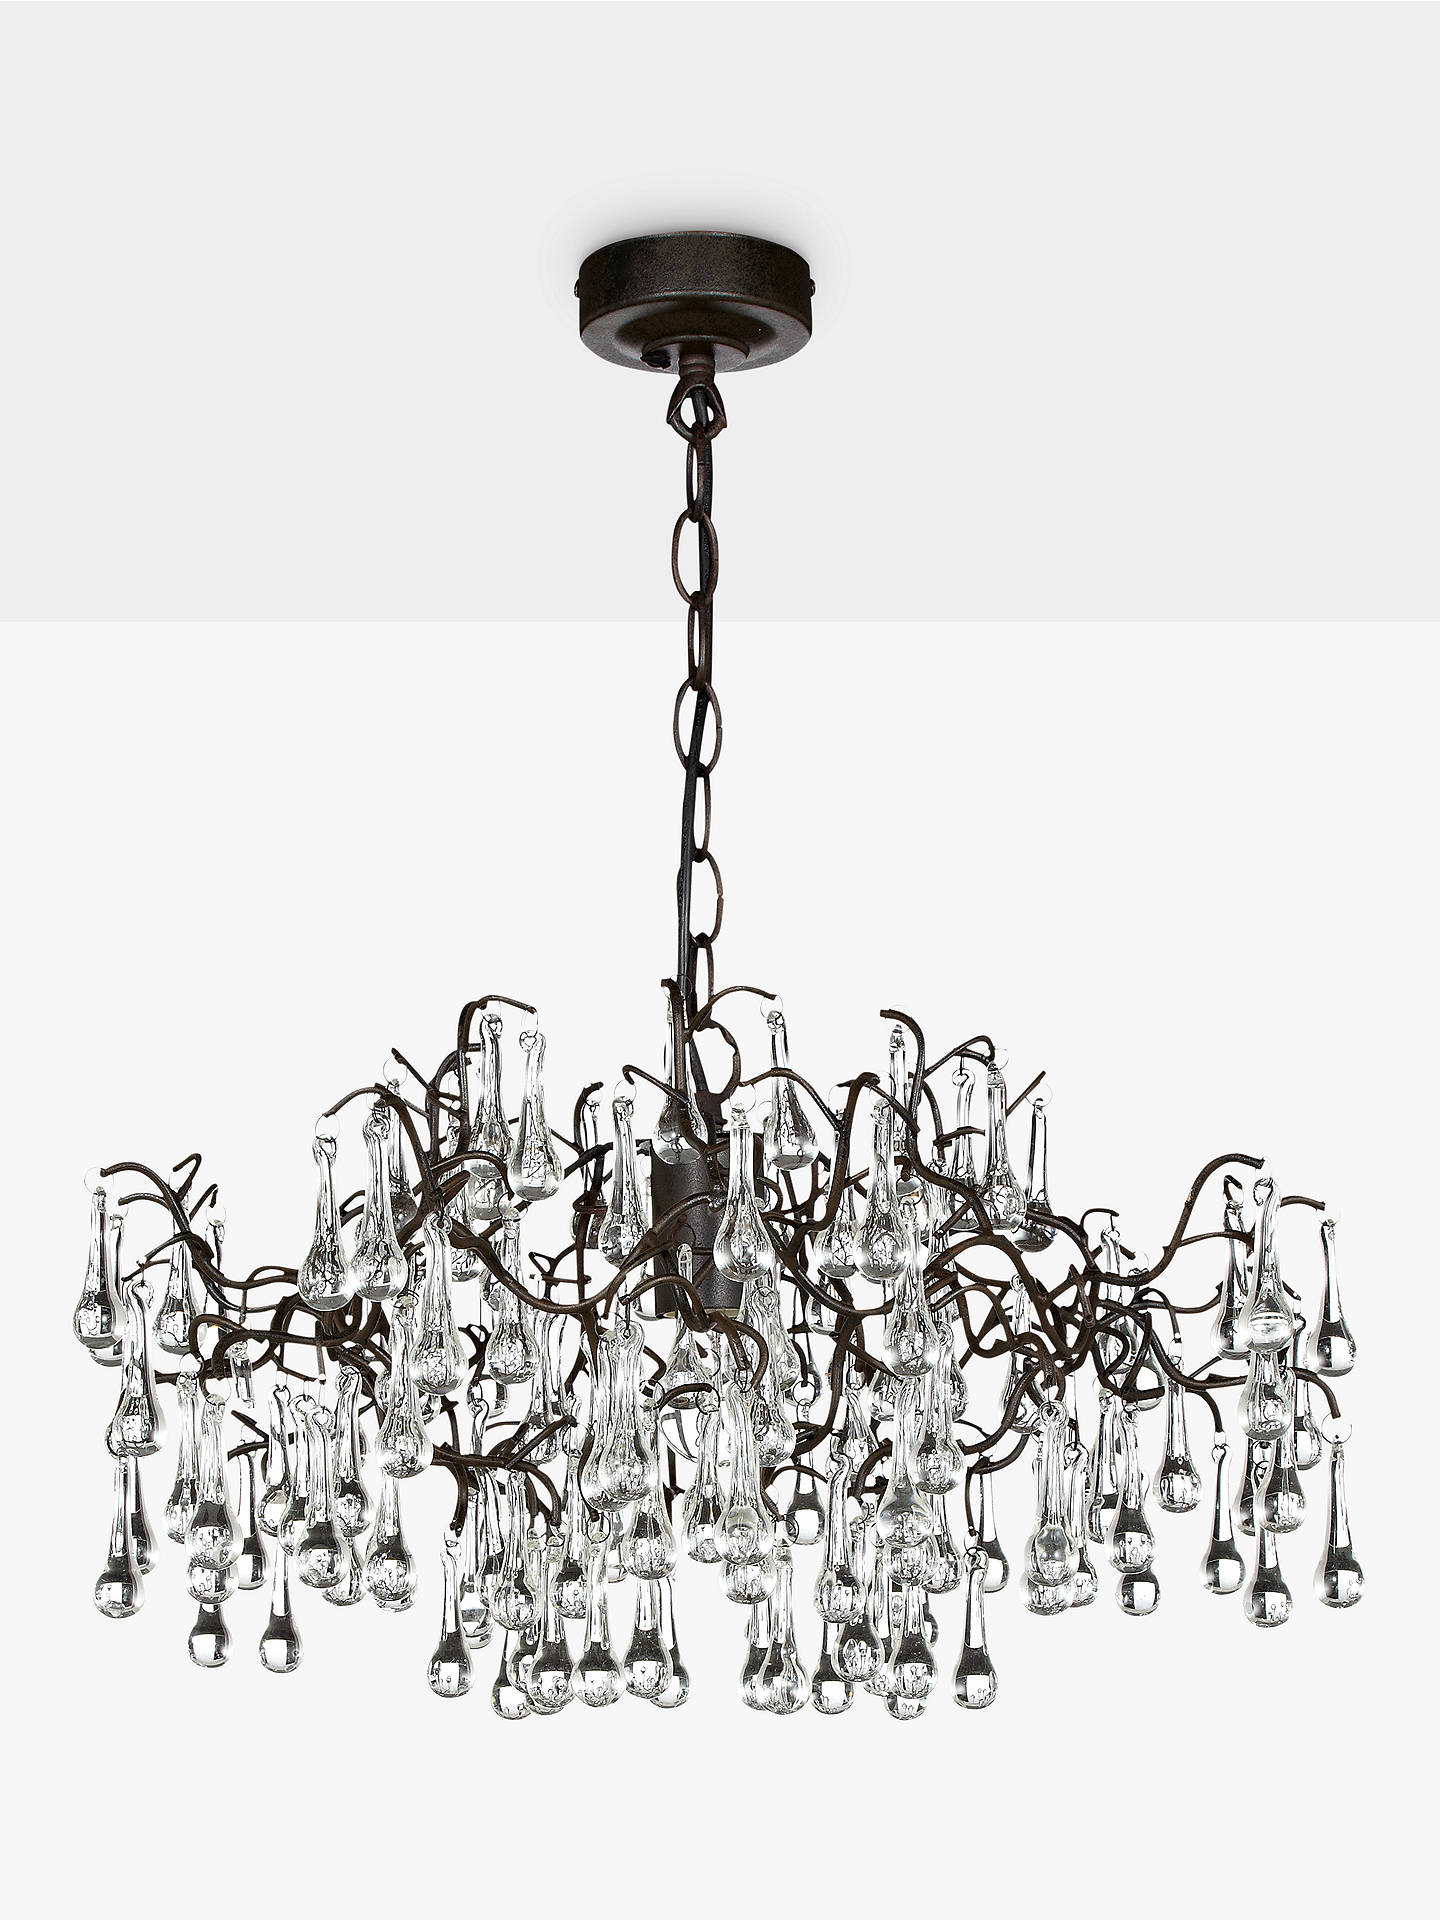 BuyJohn Lewis & Partners Victoria Chandelier Online at johnlewis.com